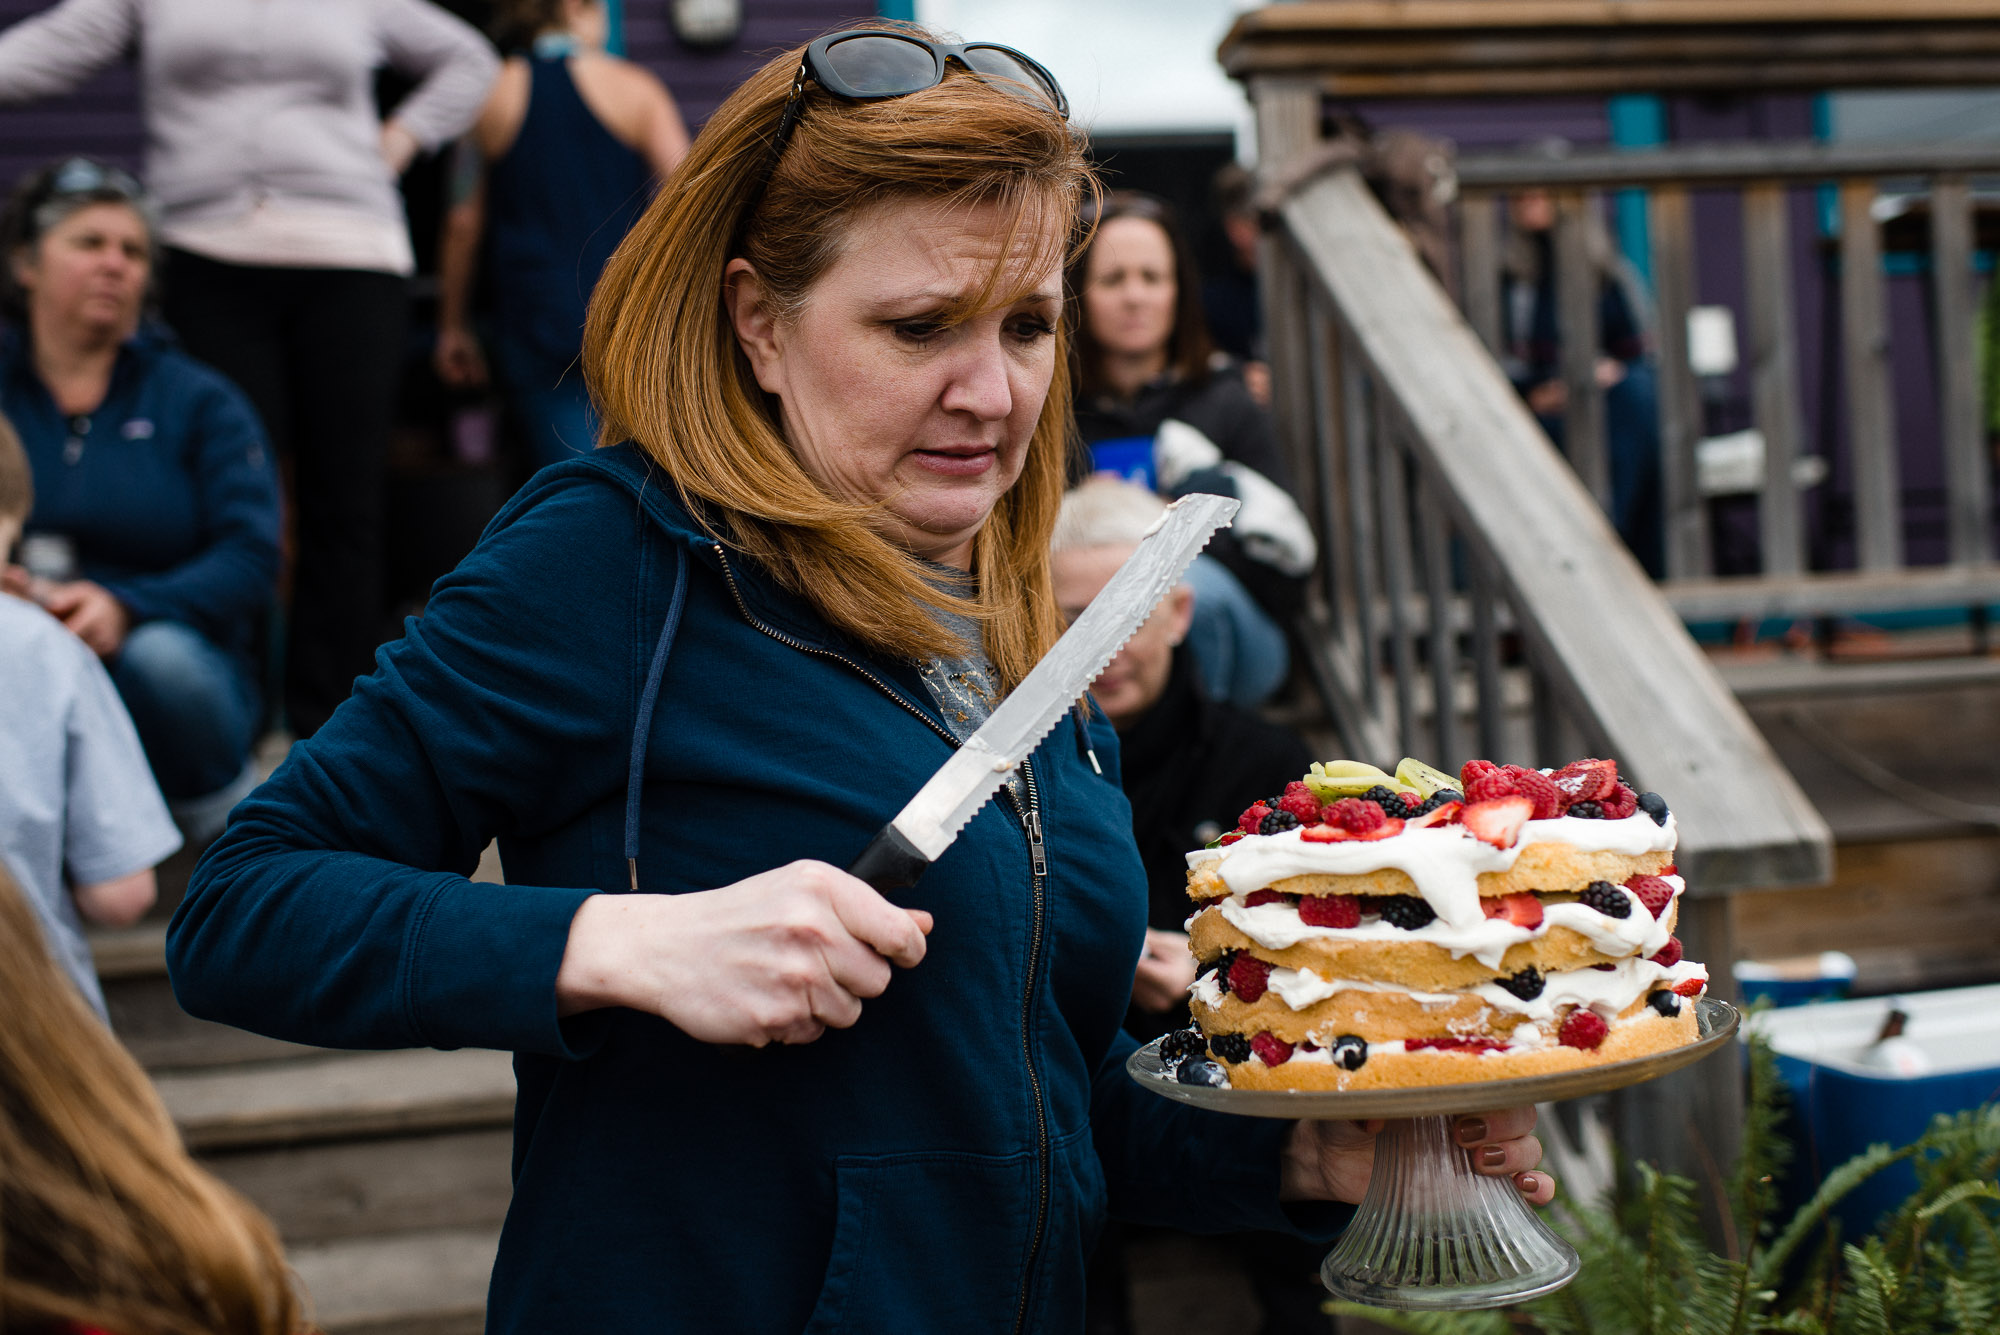 woman carries cake and knife